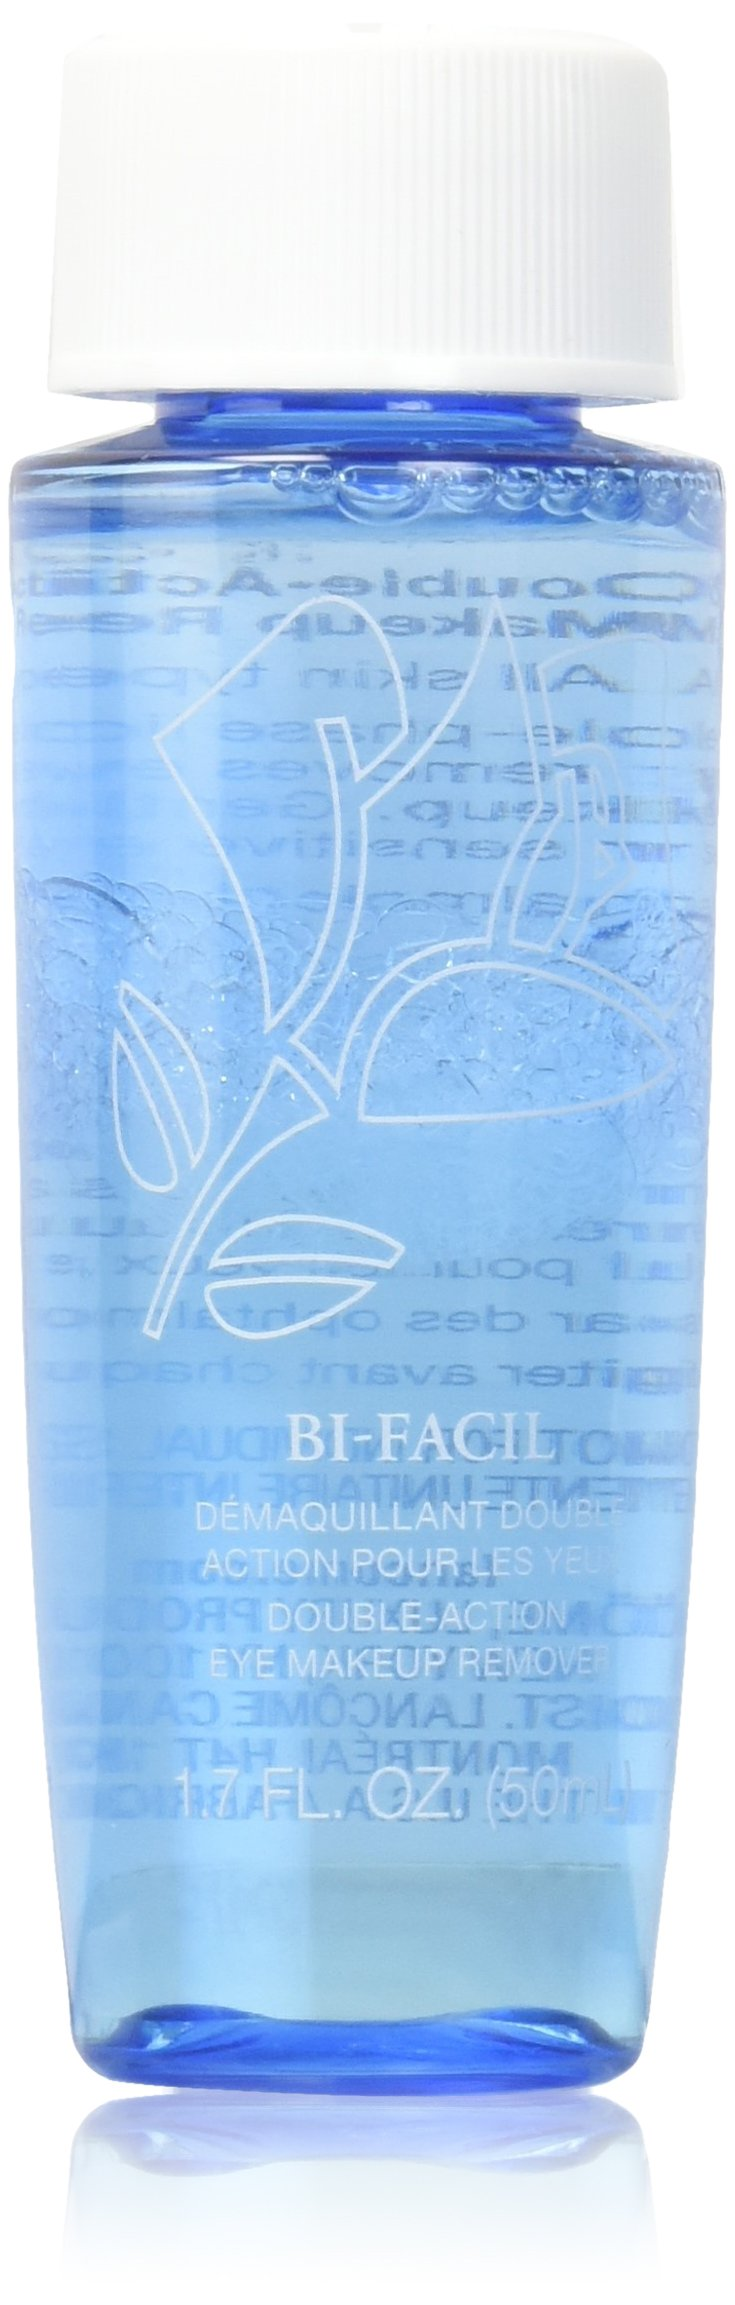 Bi-Facil Double Action Eye Makeup Remover 1.7 FL. OZ. Each (Lot of 4)